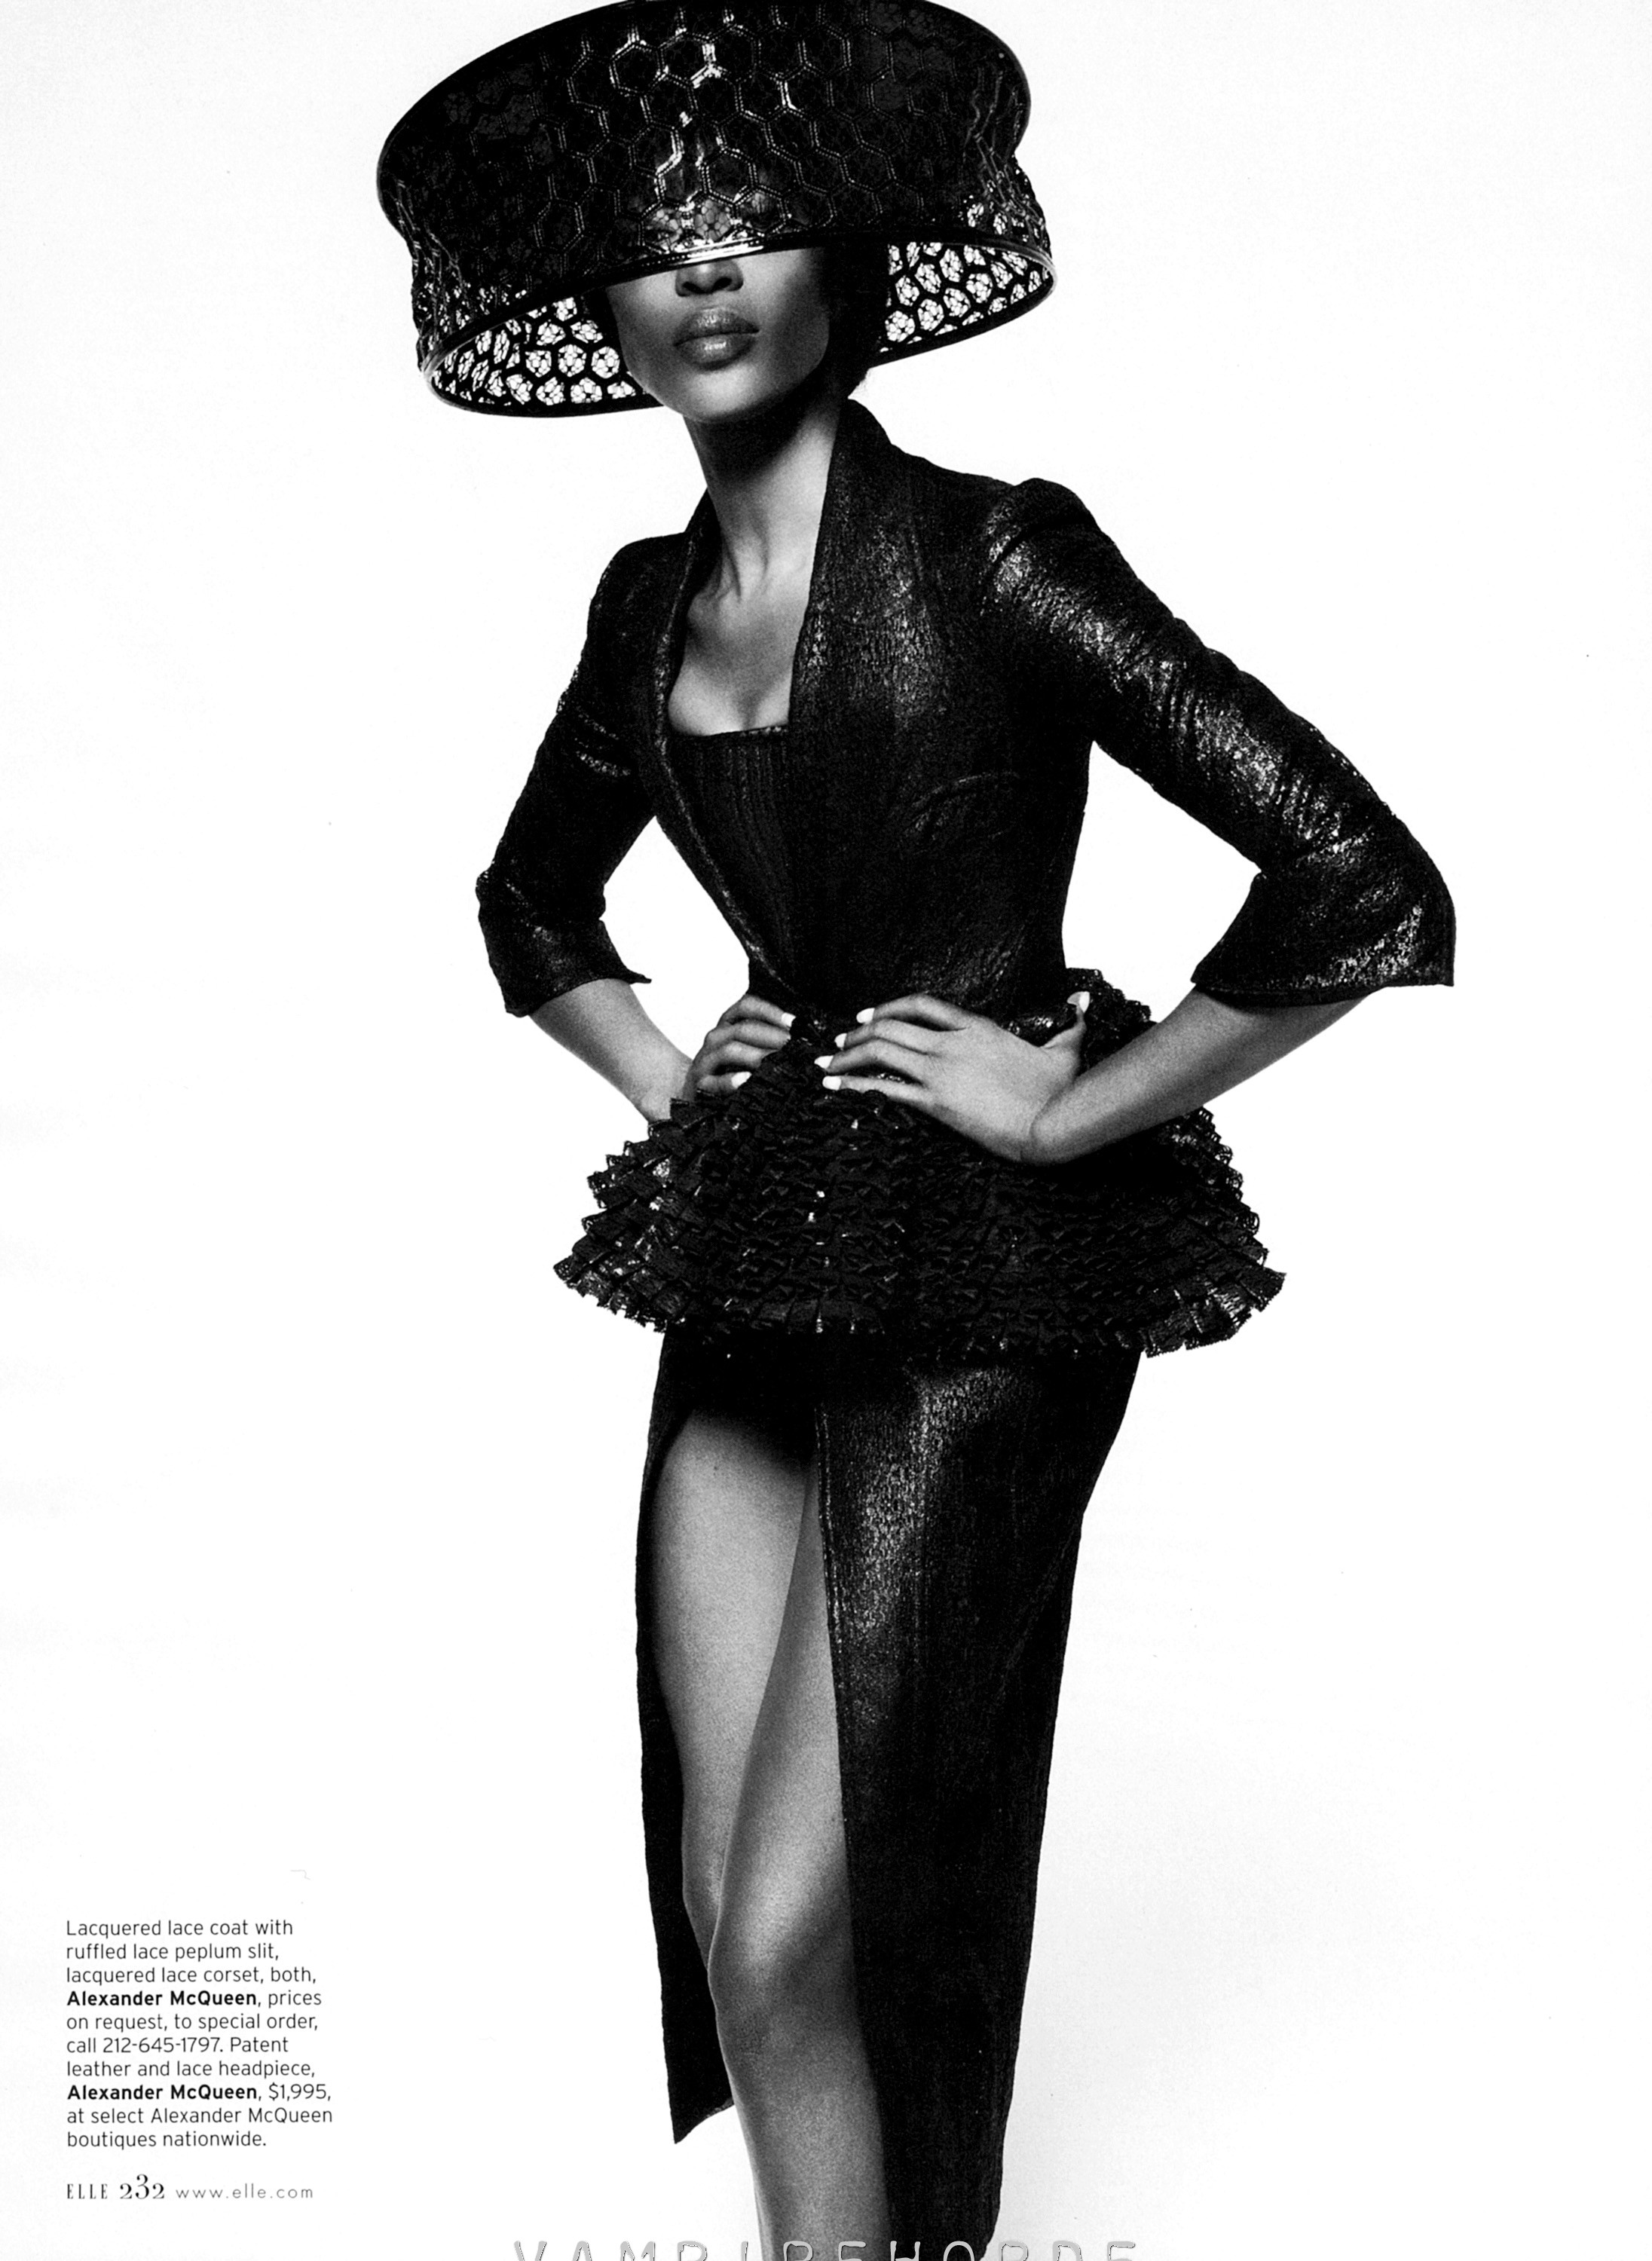 fashion_scans_remastered-naomi_campbell-elle_usa-february_2013-scanned_by_vampirehorde-hq-1